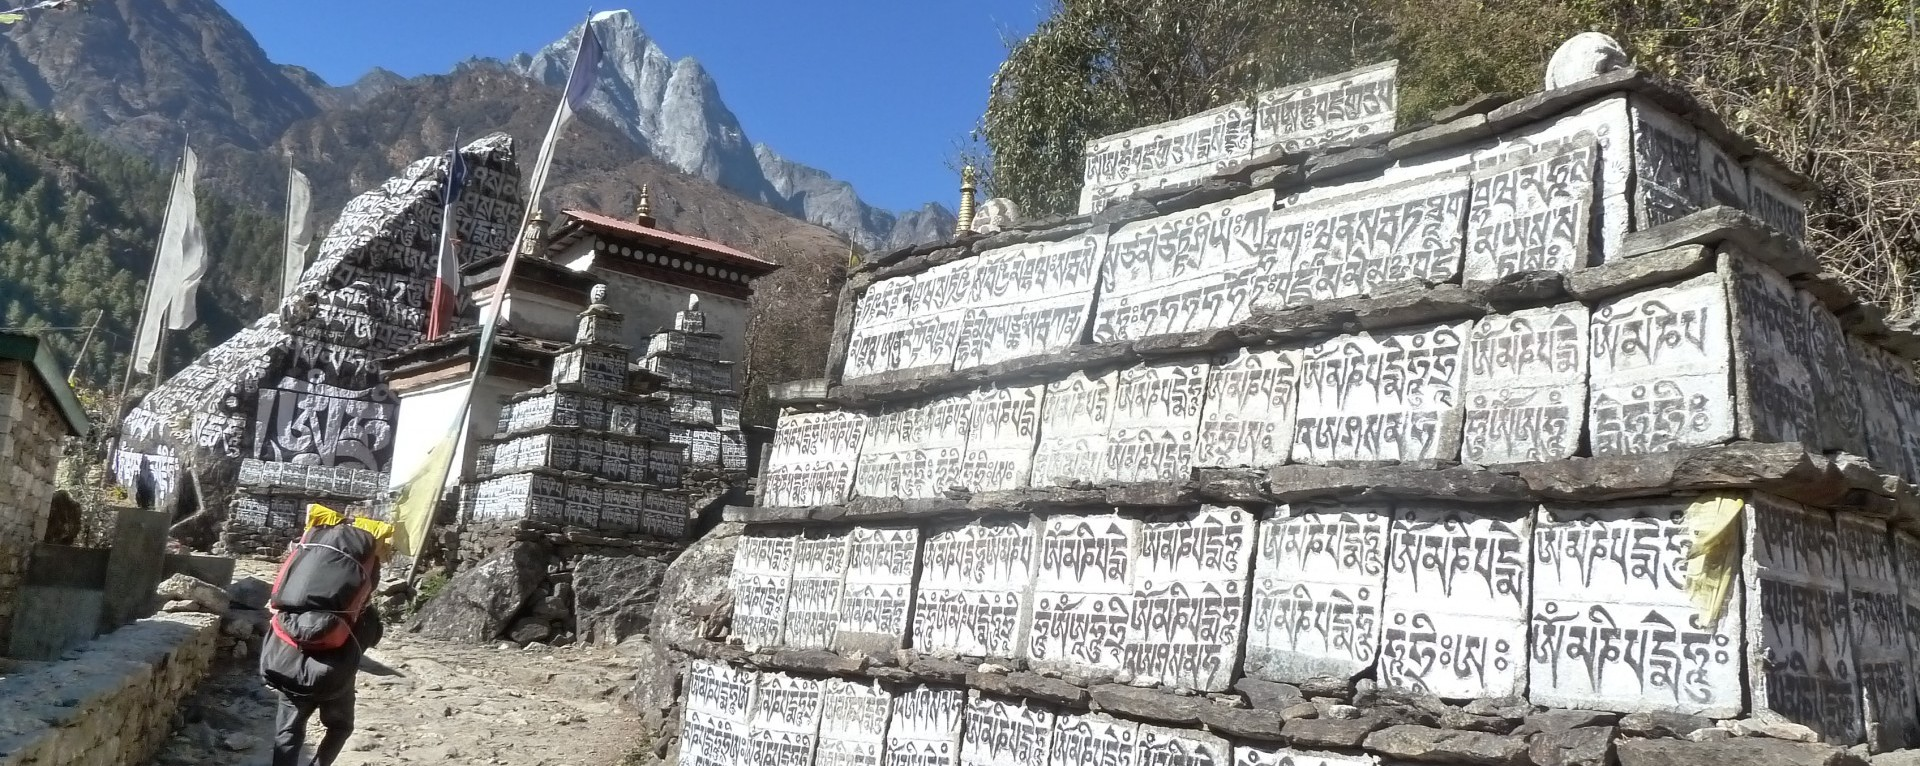 Buddhist stupas and mane walls on Everest base camp trail